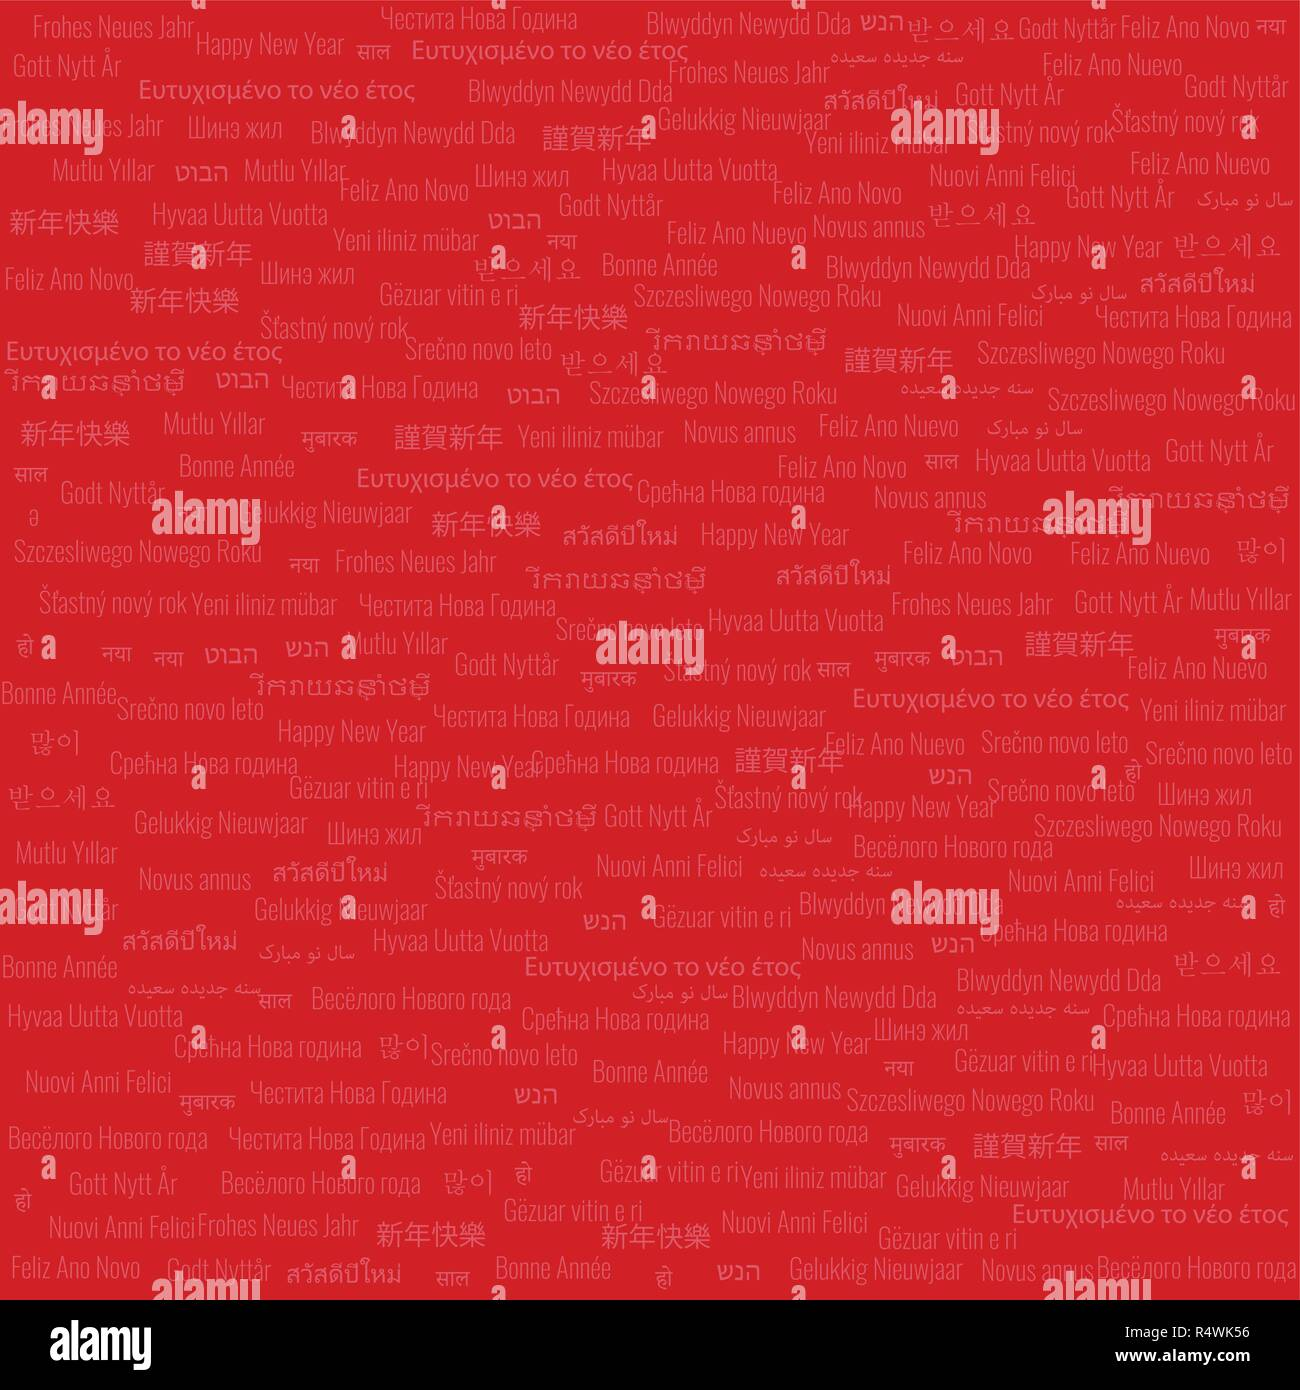 Christmas & New Year Themed Background Medium Density Tile Contains 'Happy New Year' Text in Many Different Languages on Red Background - Stock Image